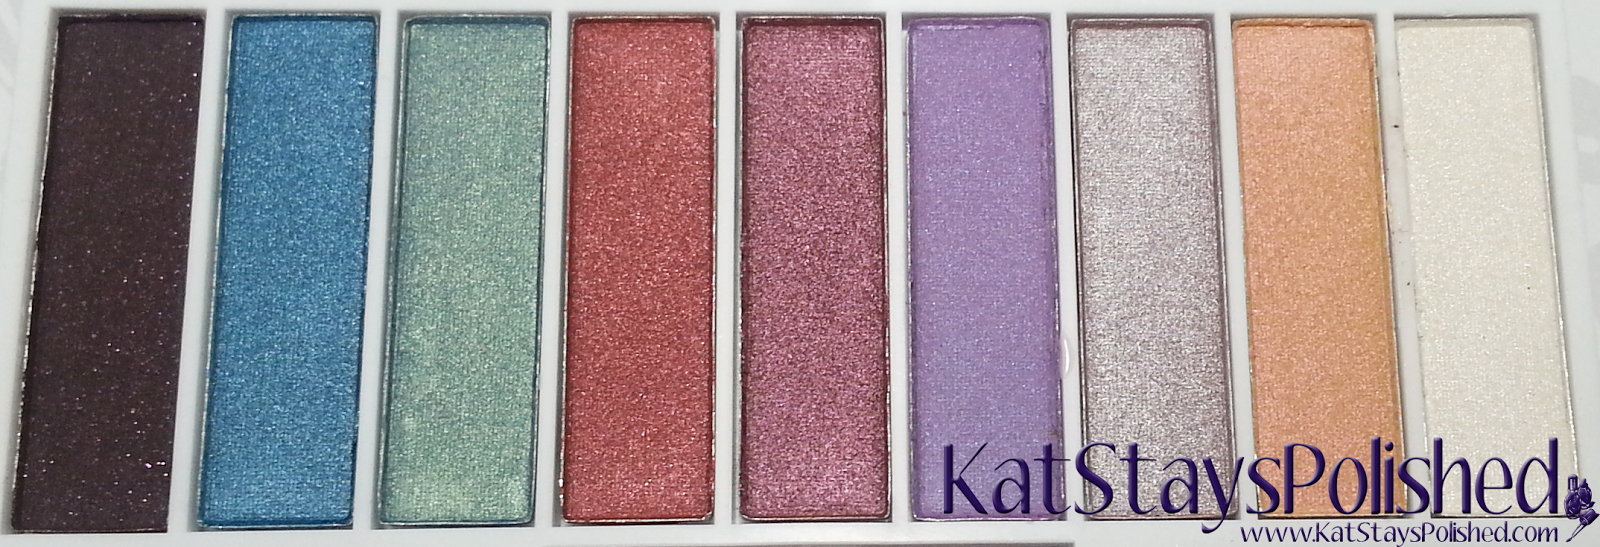 e.l.f. Disney's Frozen Elsa Snow and Ice Glow Eyeshadow | Kat Stays Polished